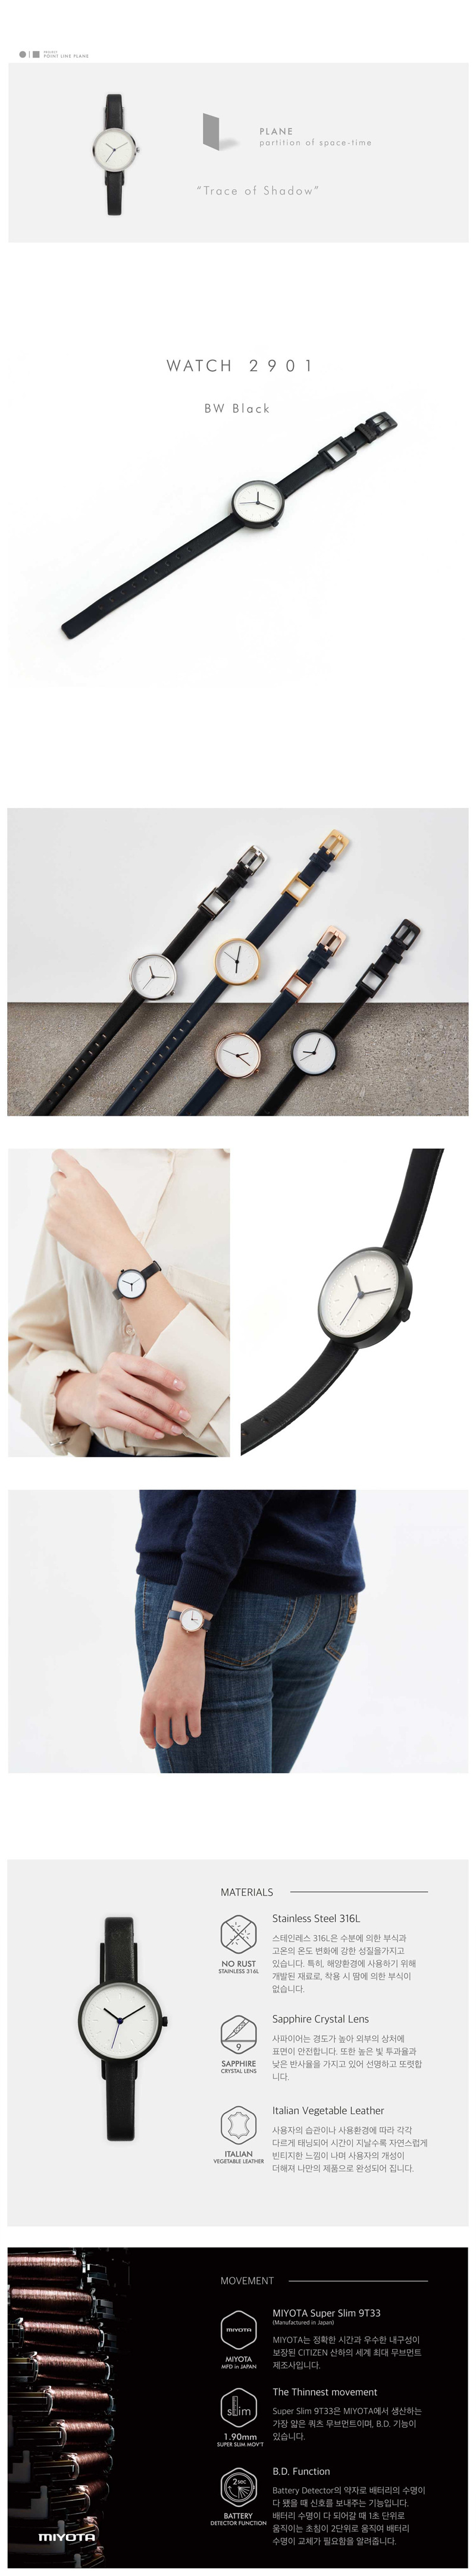 프롬헨스(FROMHENCE) WATCH 2901 BW BLACK